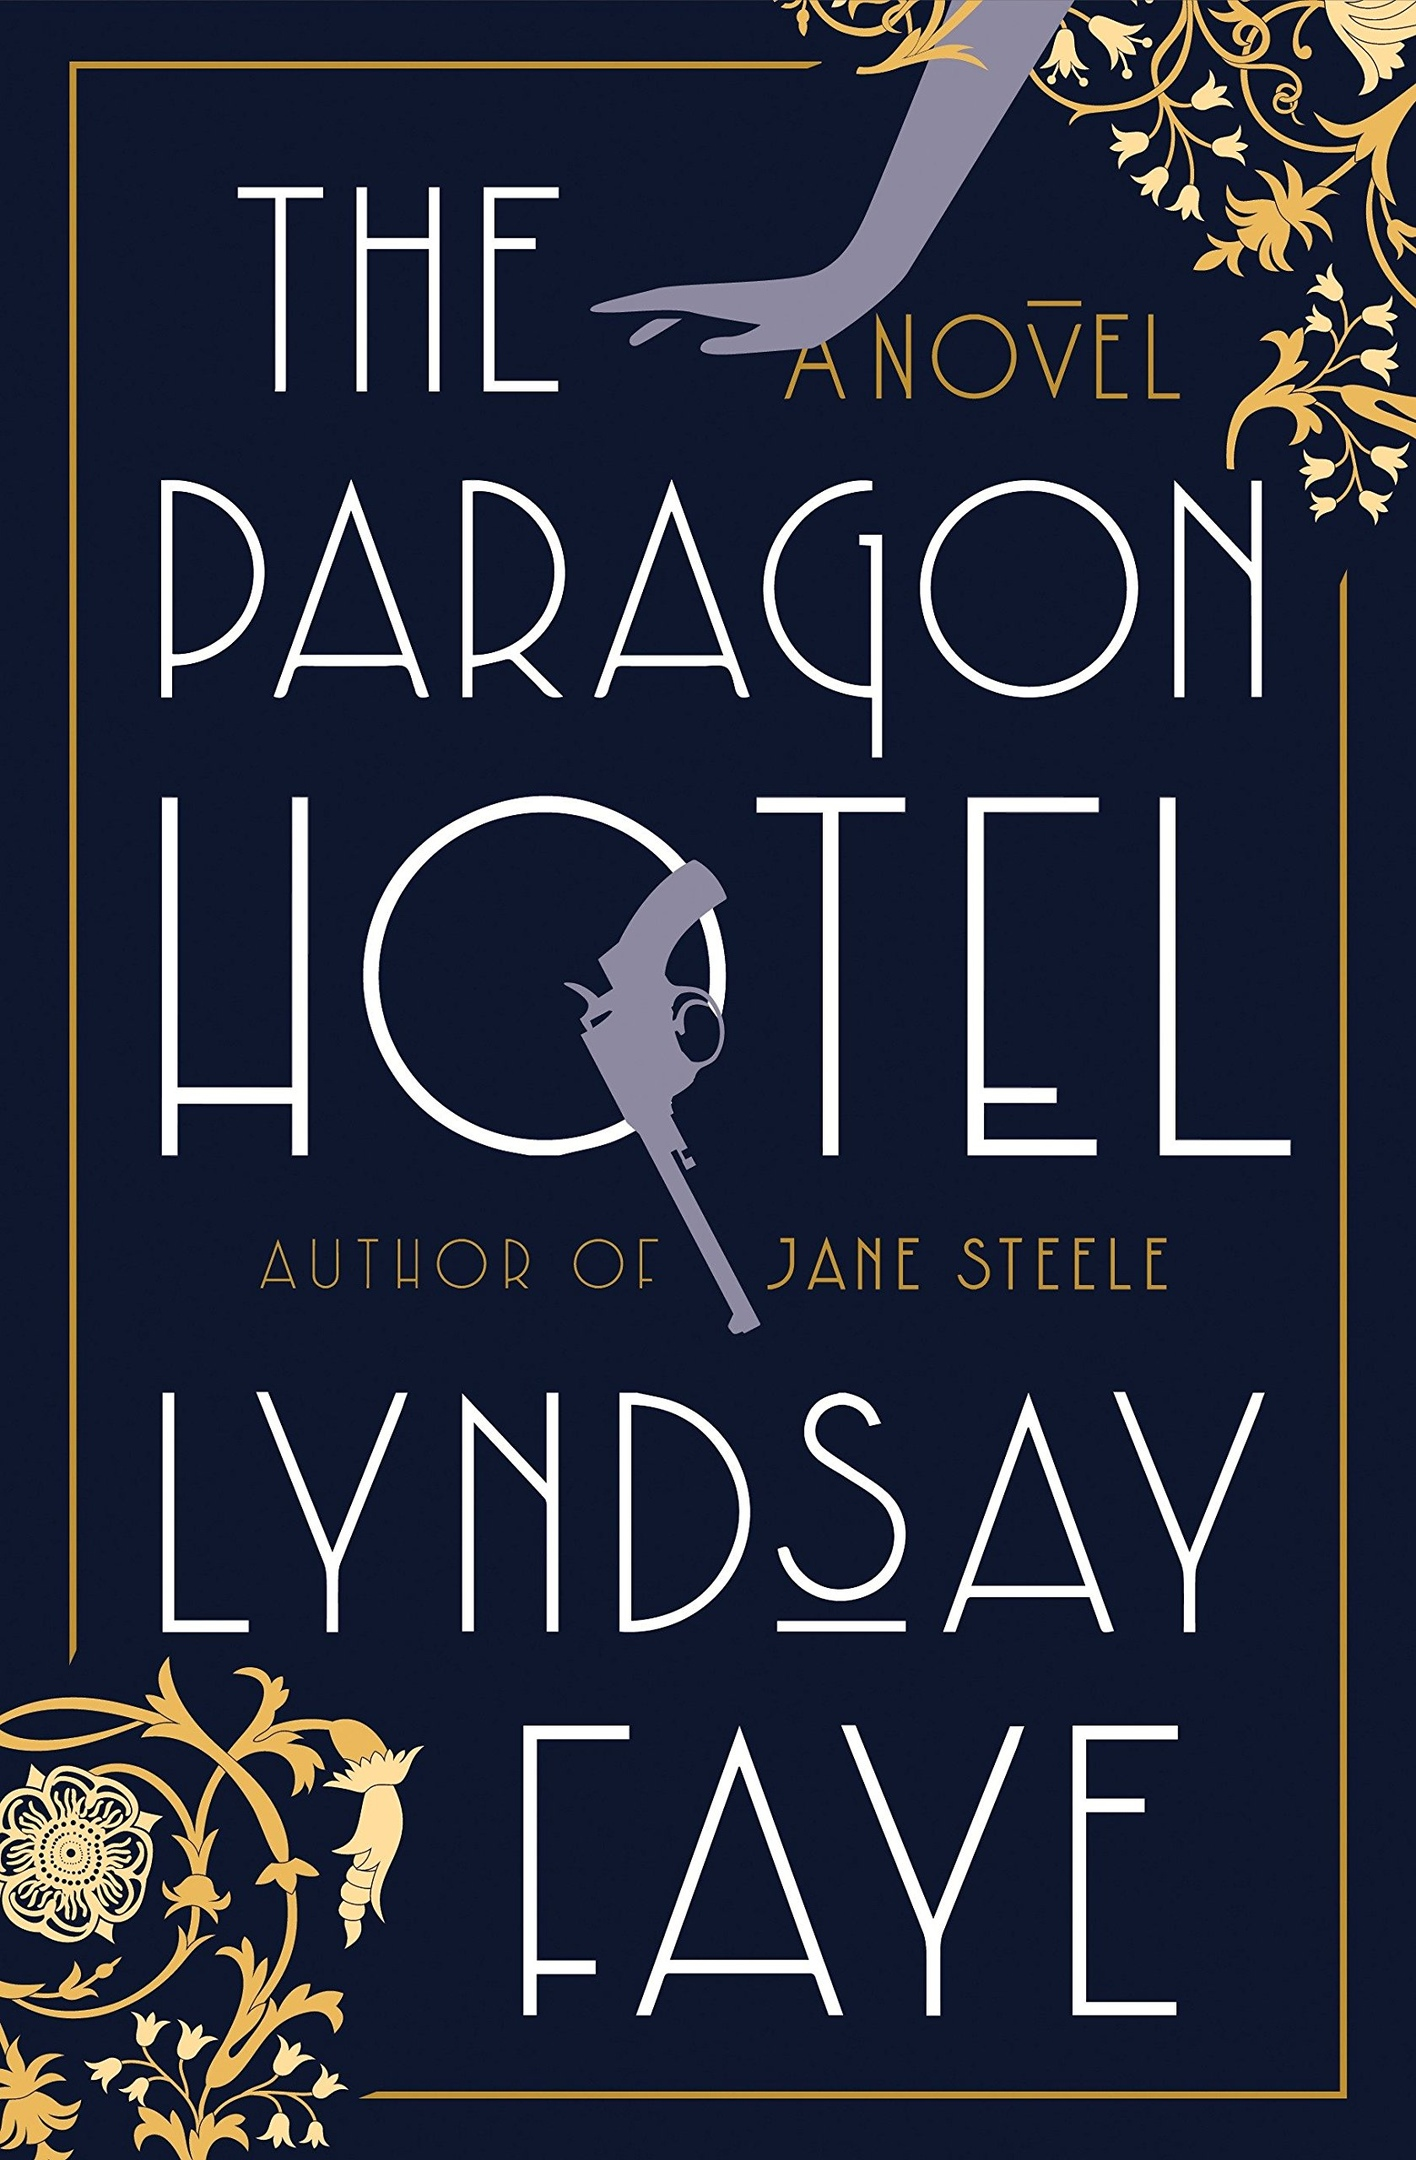 Lyndsay Faye – The Paragon Hotel